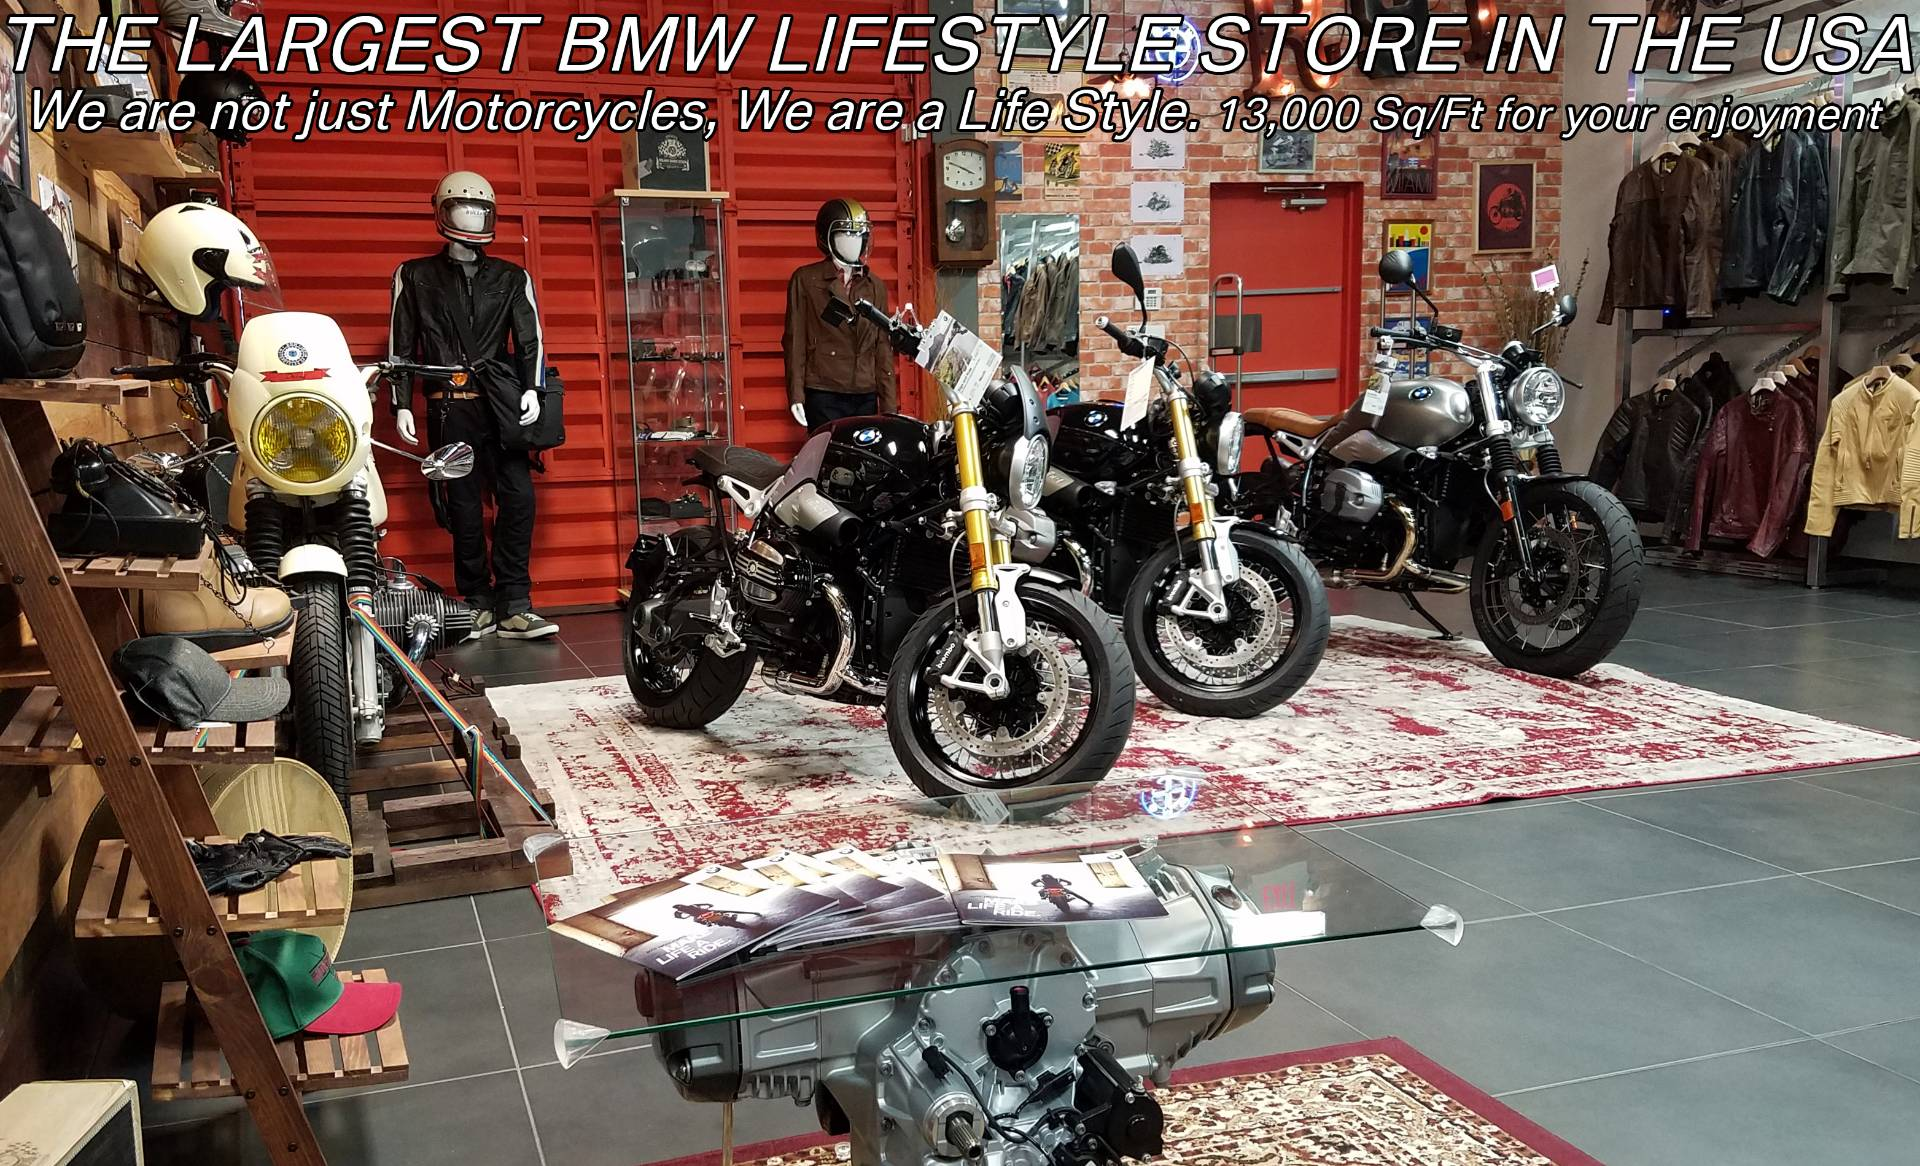 Used 2011 BMW R 1200 GS For Sale, Pre Owned BMW R 1200GS For Sale, Pre-Owned BMW Motorcycle R1200GS, BMW Motorcycle, GS, BMW - Photo 25